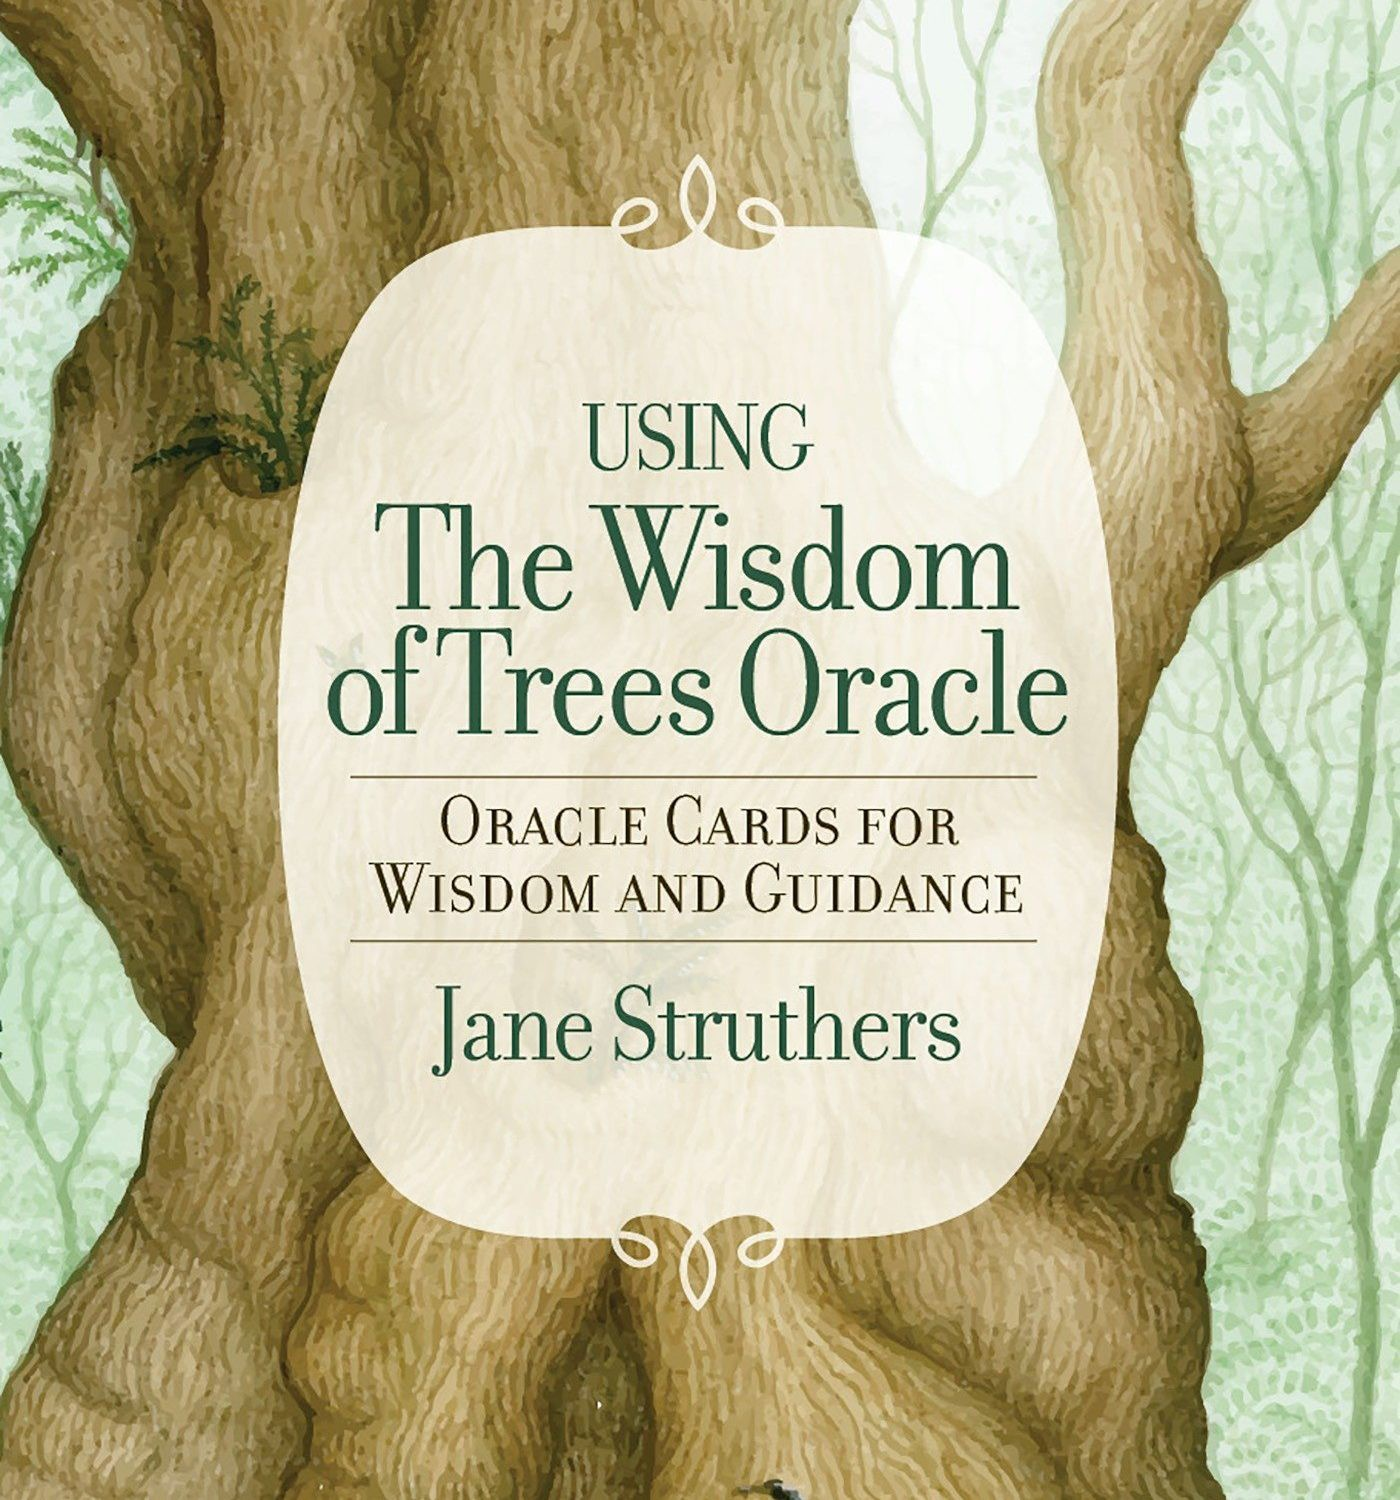 Wisdom of Trees Oracle Cards